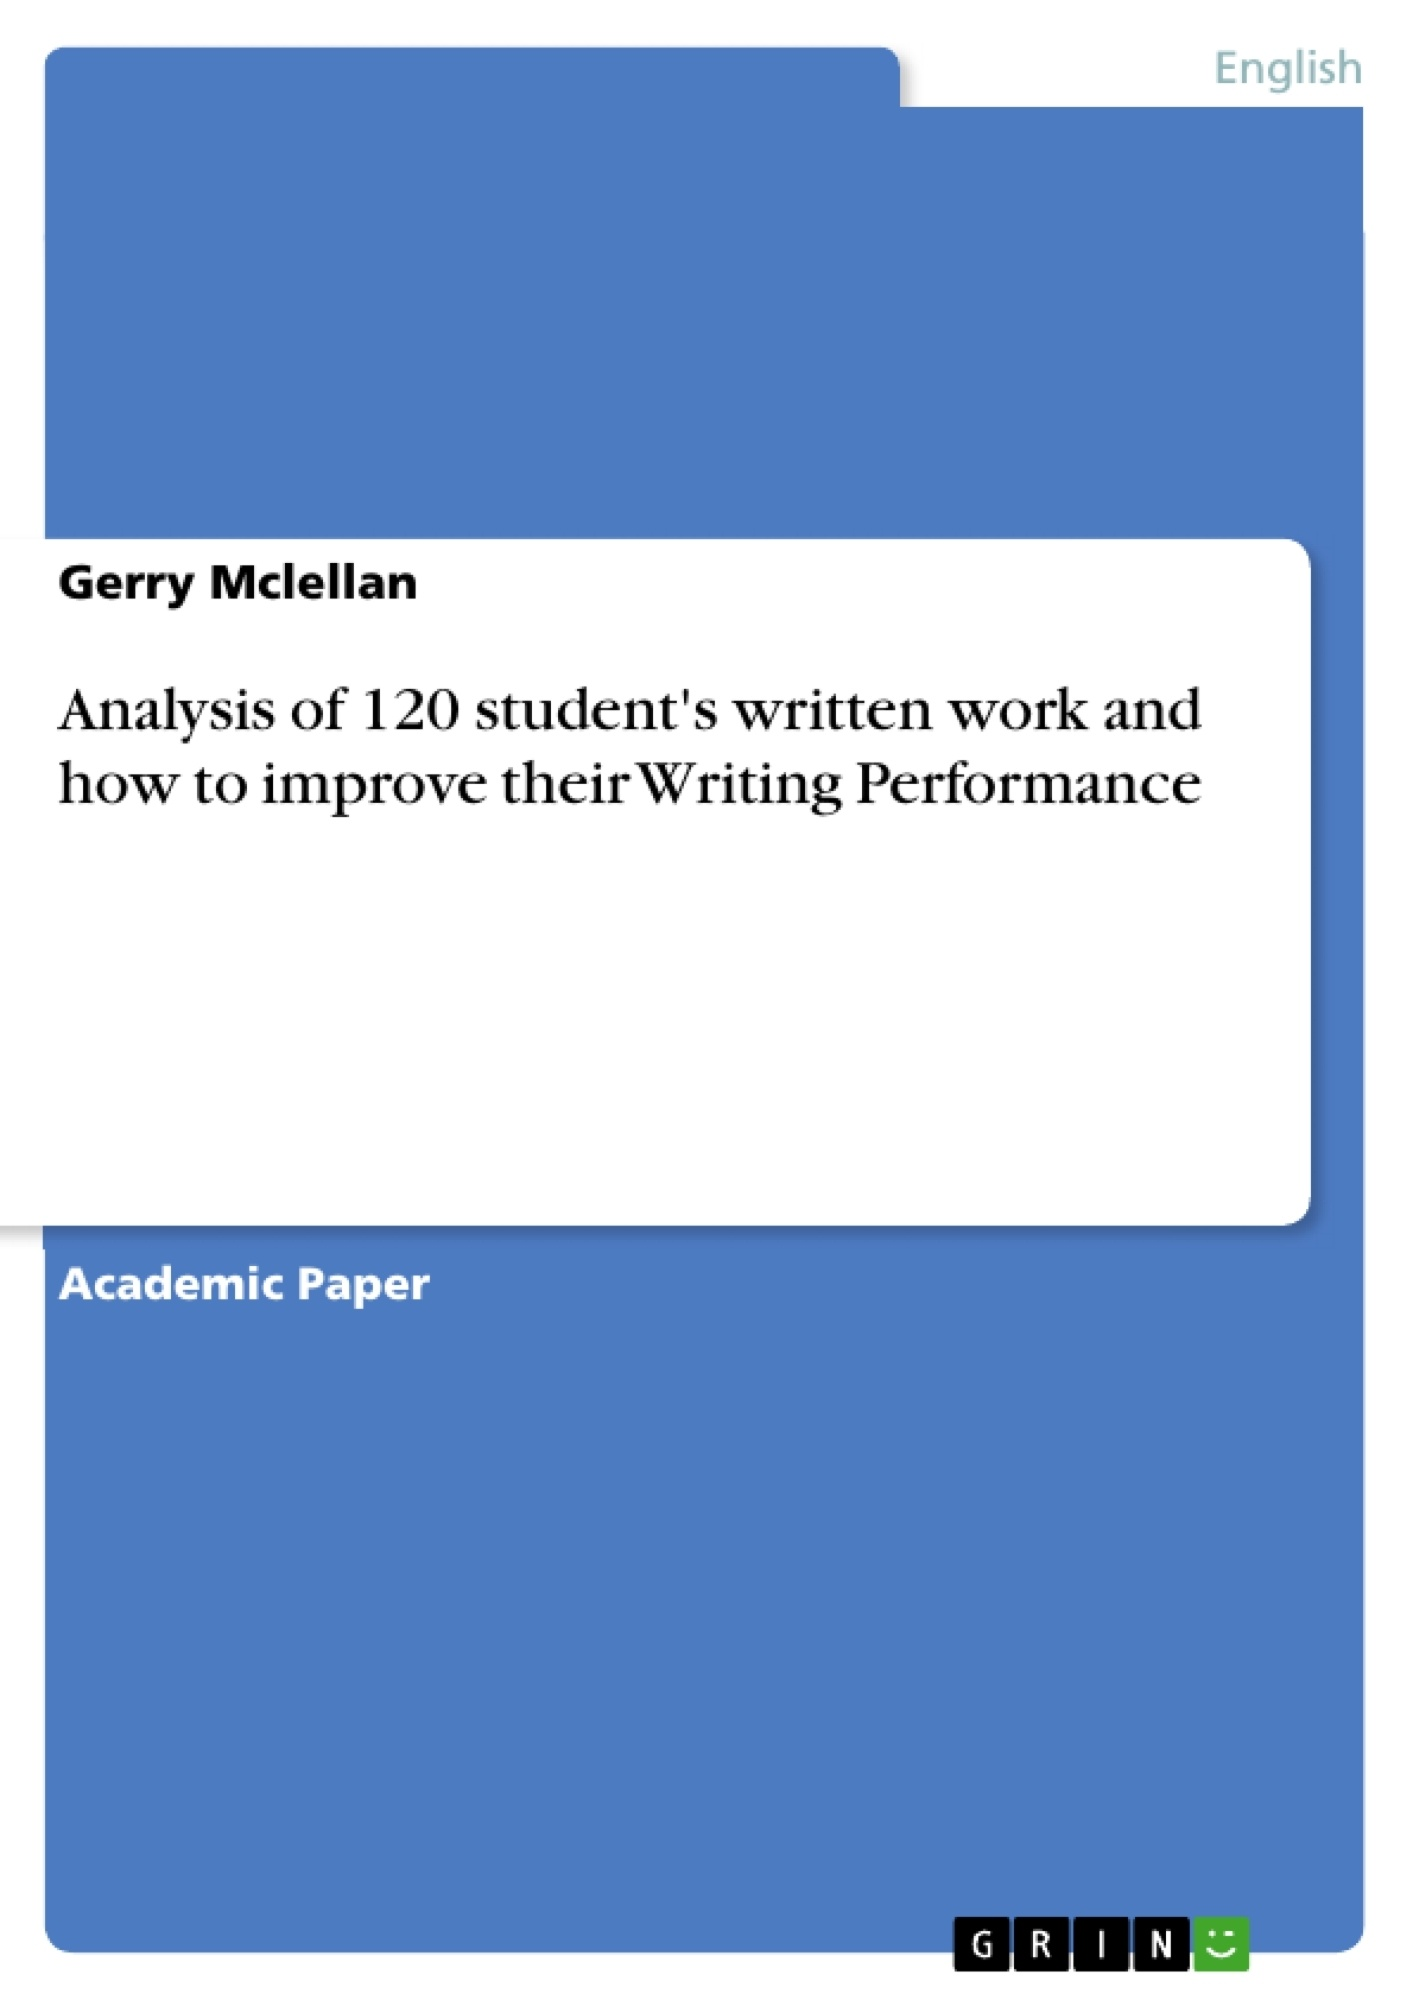 Title: Analysis of 120 student's written work and how to improve their Writing Performance